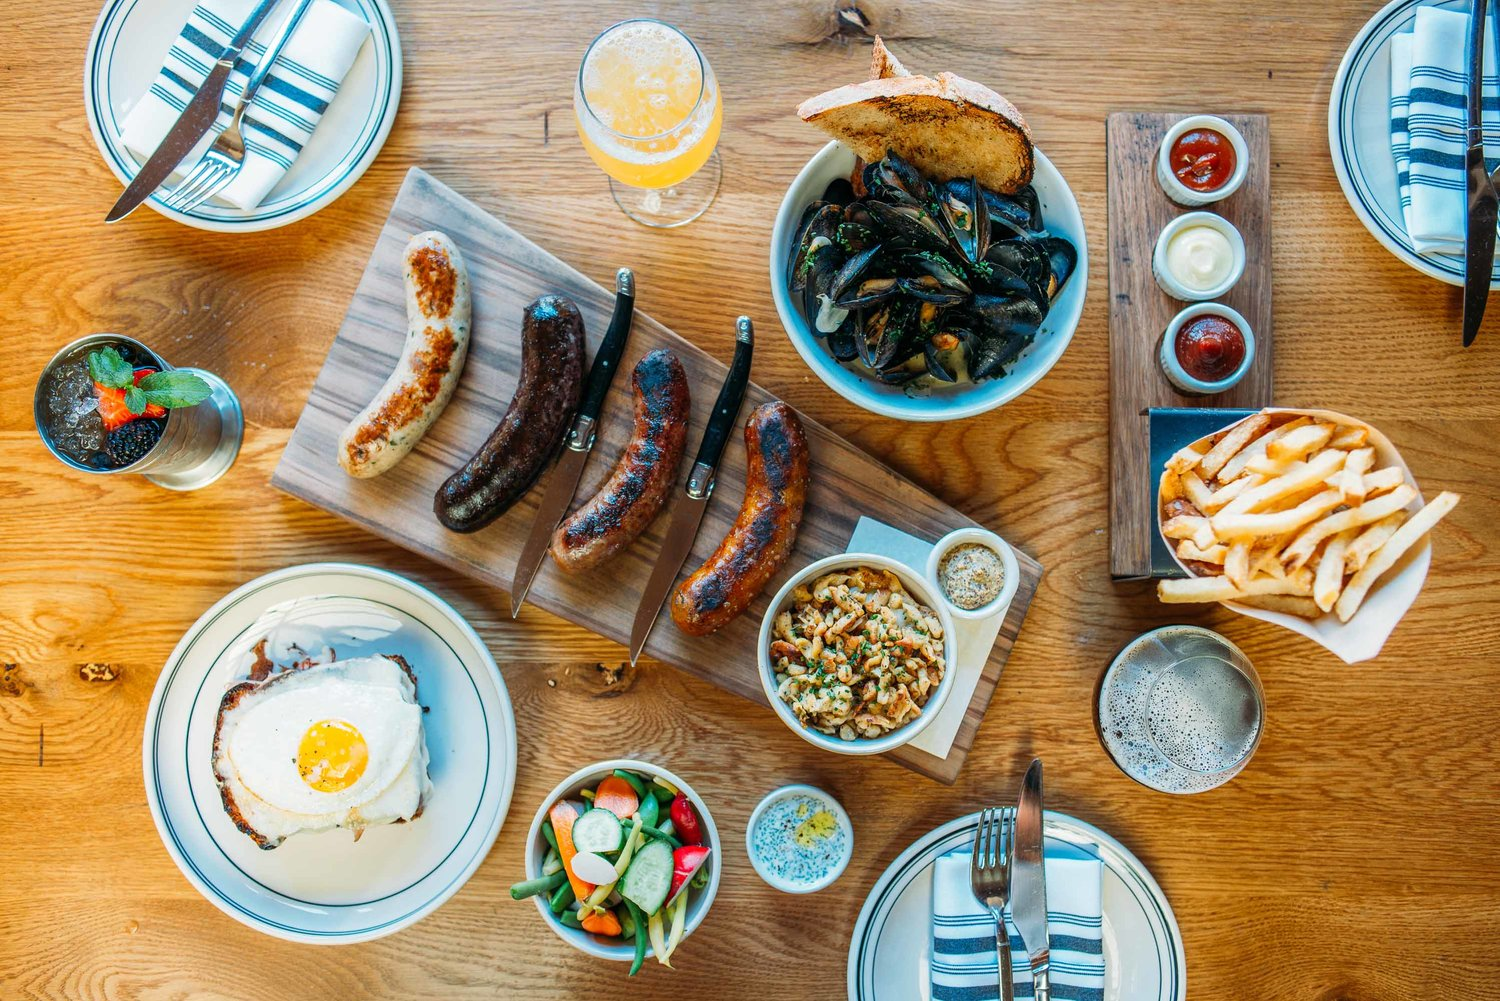 SF's Ultimate Brunch List - Devoured, vetted, and recommended for your comfort. Happy eating.